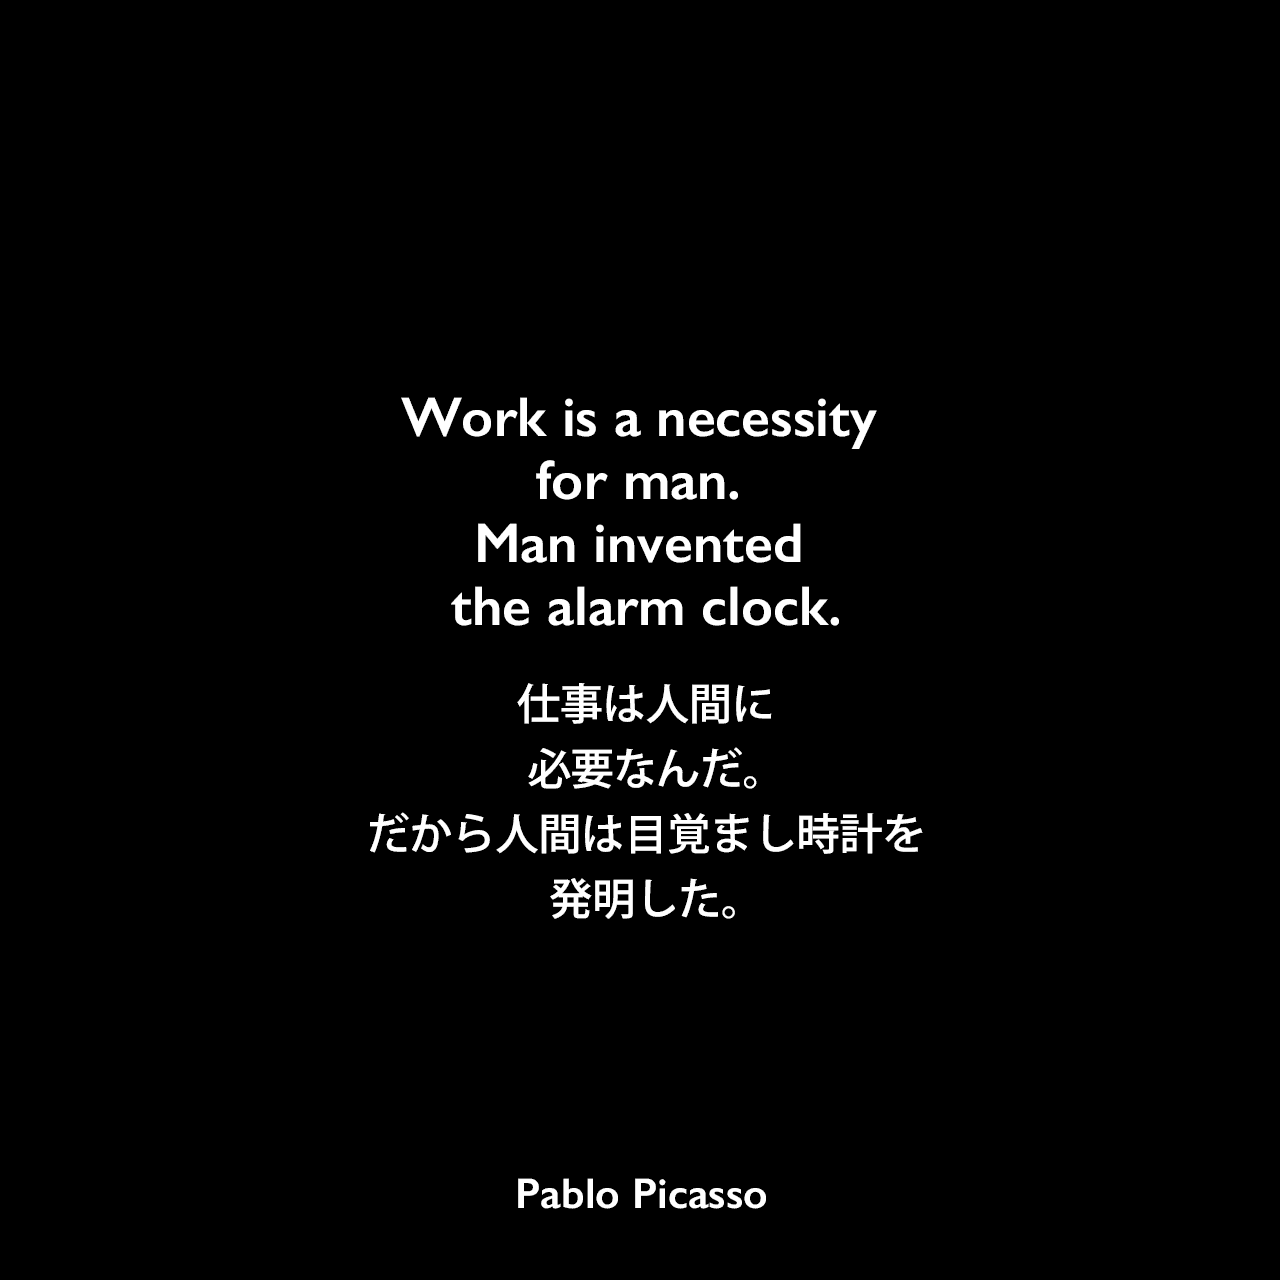 Work is a necessity for man. Man invented the alarm clock.仕事は人間に必要なんだ。だから人間は目覚まし時計を発明した。Pablo Picasso